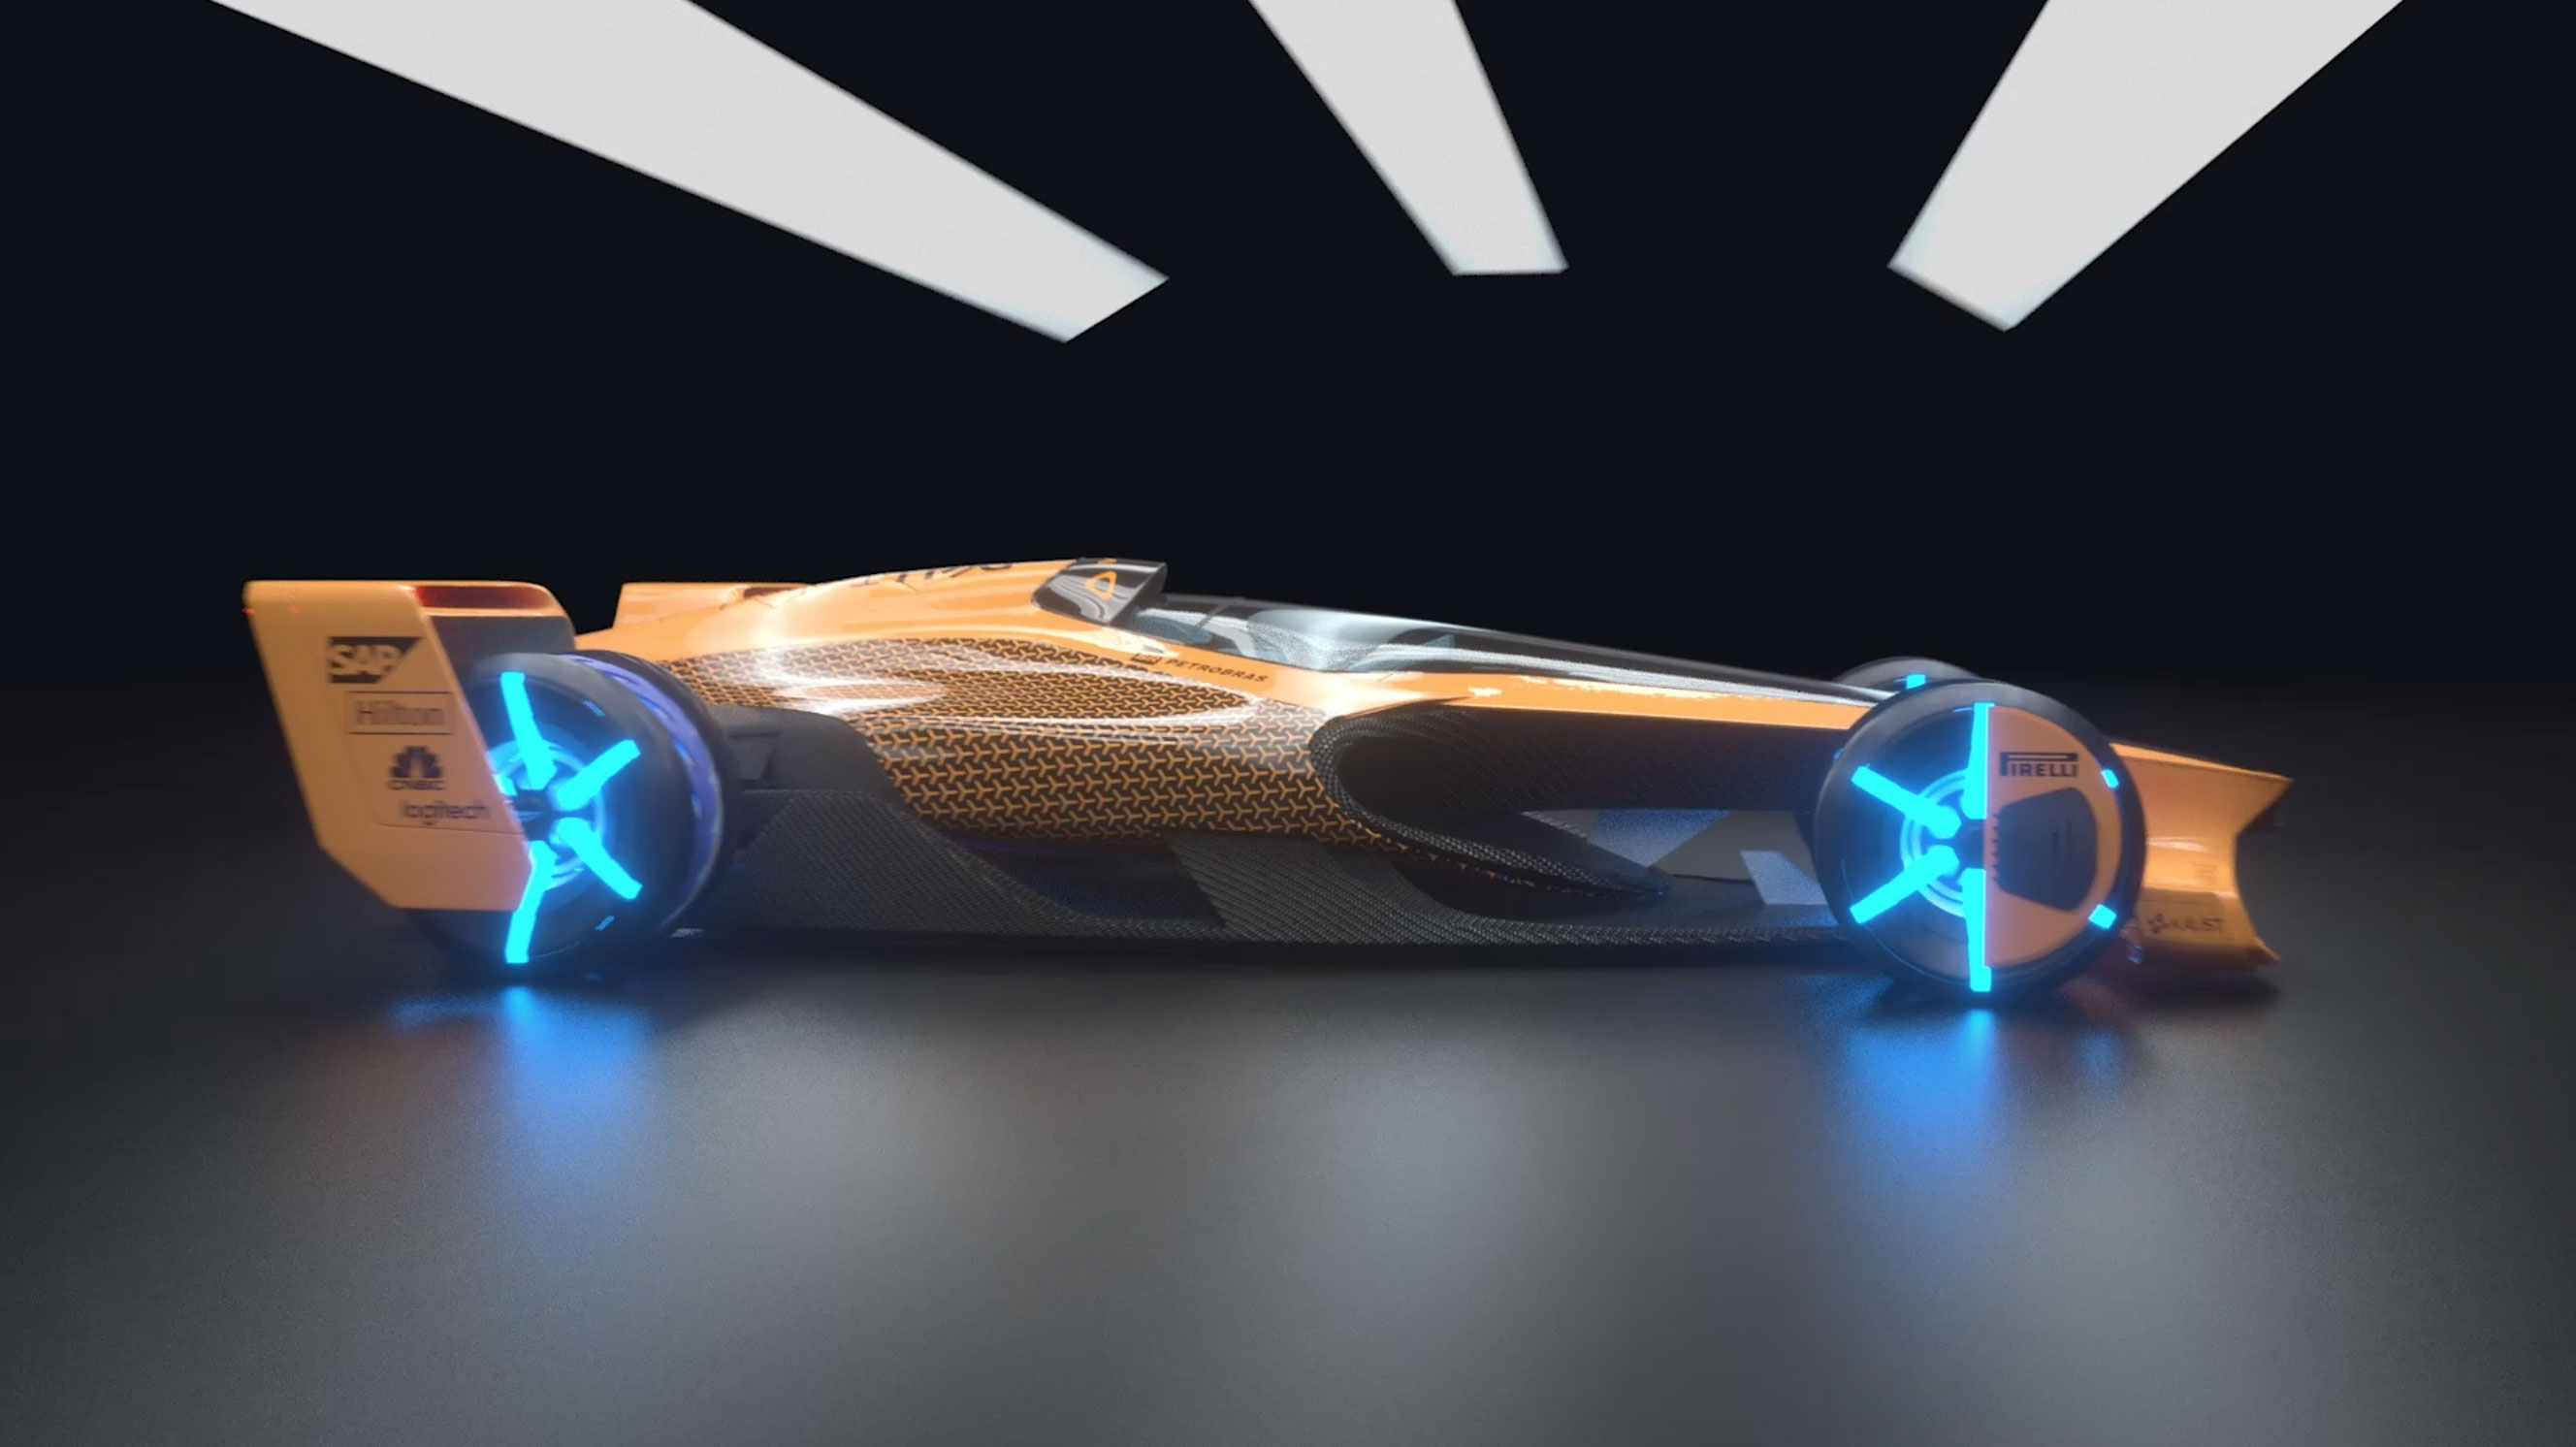 The Official McLaren Website – McLaren com